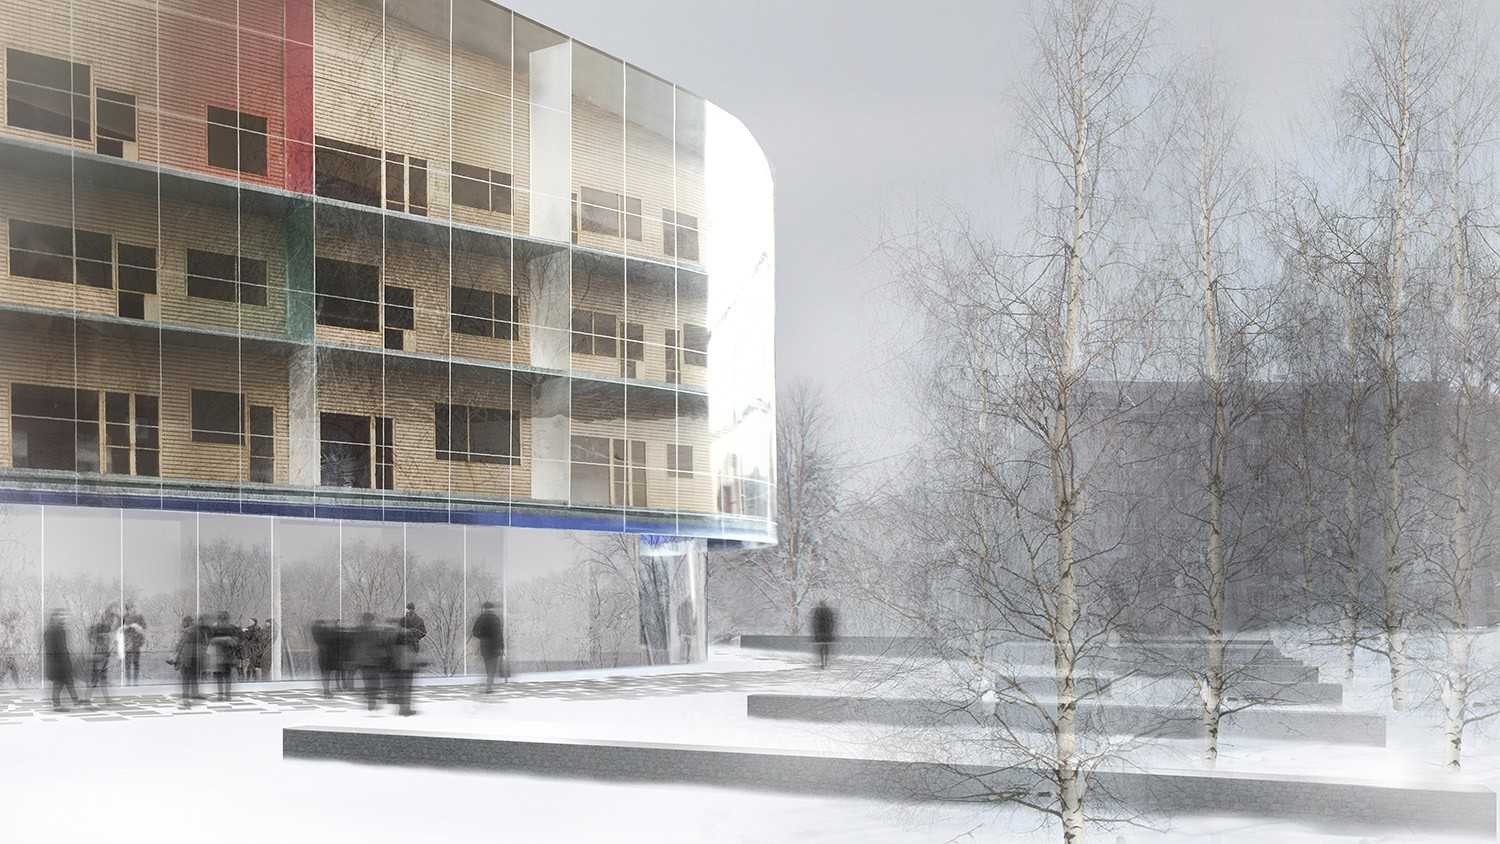 https://stevenholl.sfo2.digitaloceanspaces.com/uploads/projects/project-images/StevenHollArchitects_Meander_02 Snowy Day_WH.jpg